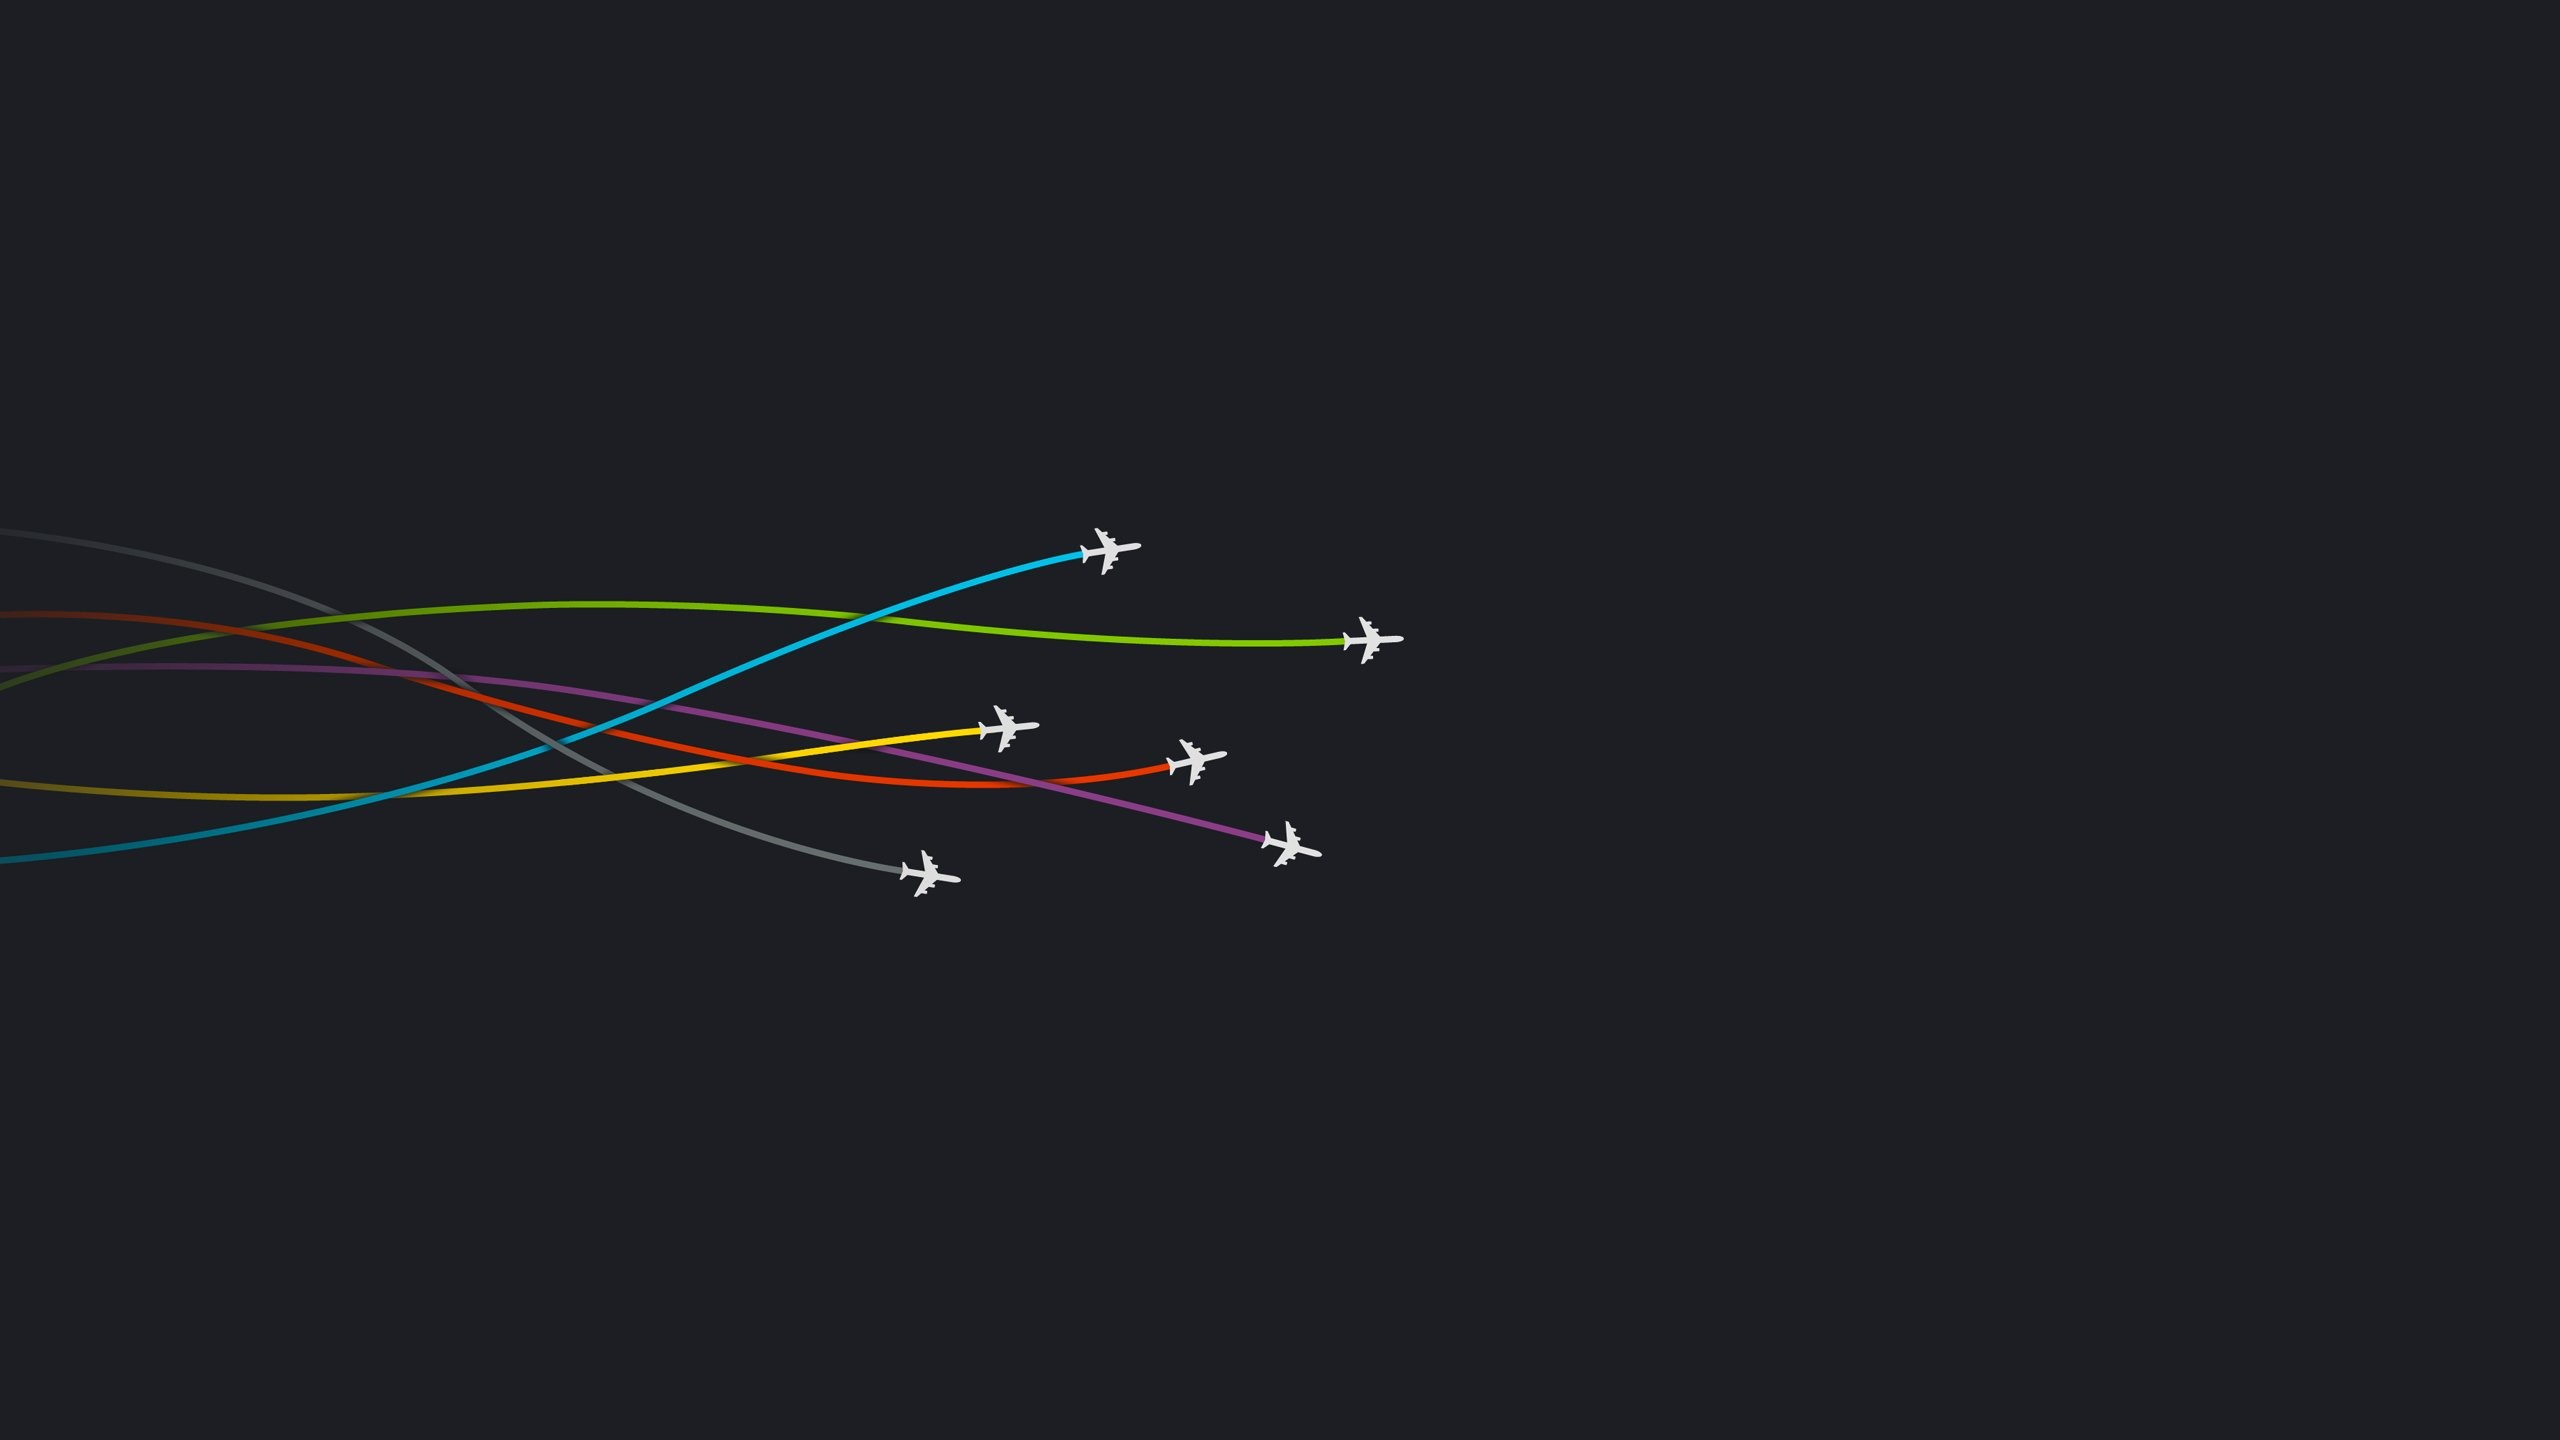 Minimal Dark Pattern Motivational Abstract Color Trails Airplanes